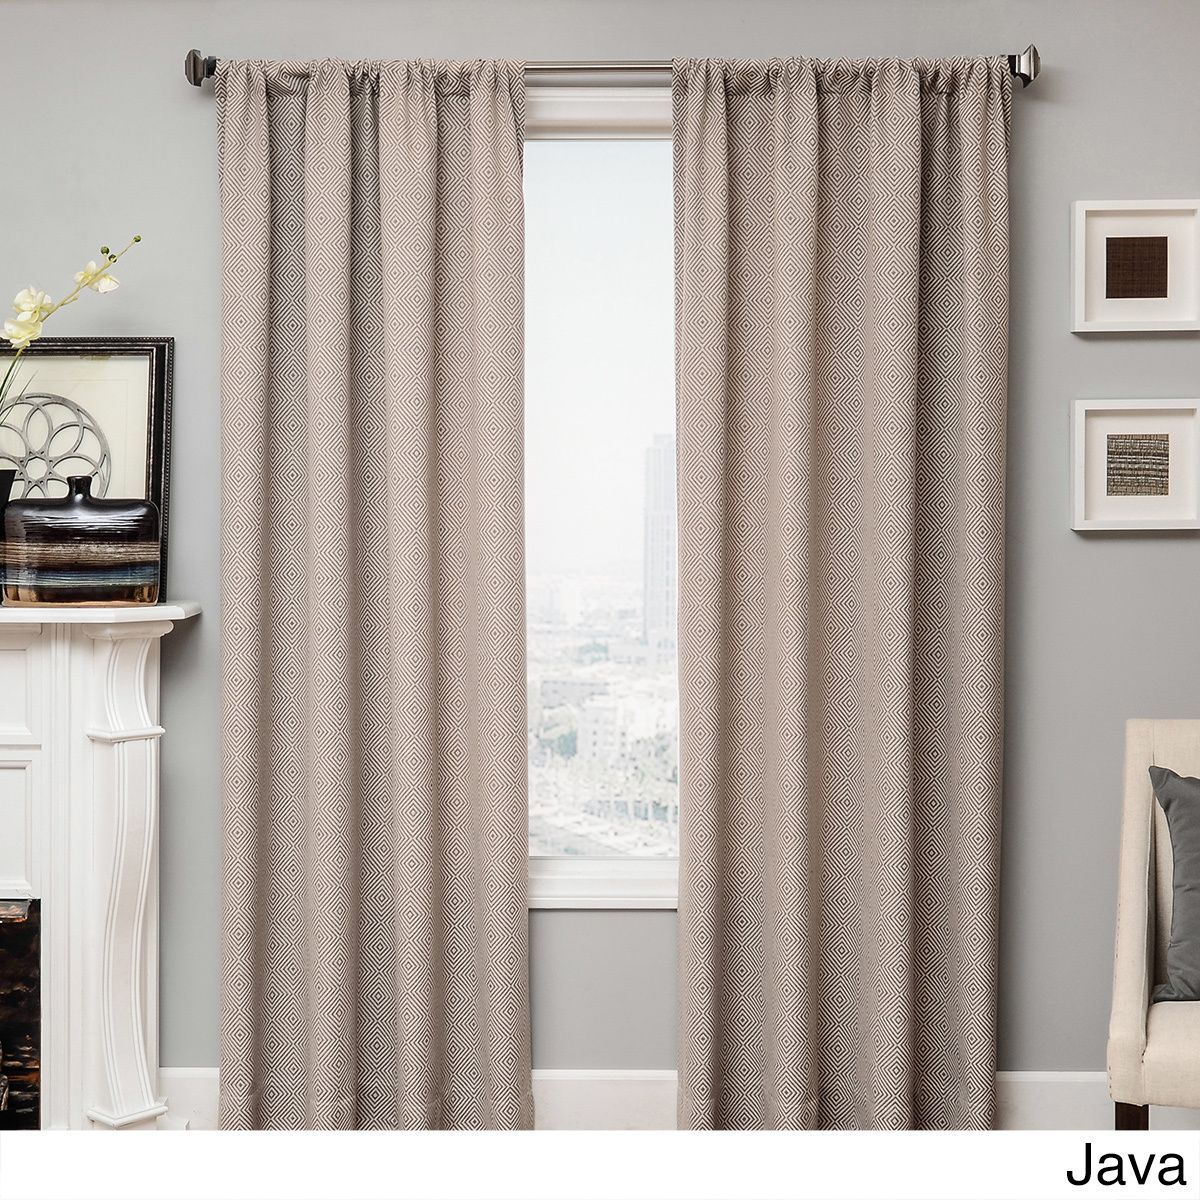 Softline Diamond Rod Pocket Curtan Panel (55X108 Java), Grey, Size 55 x 108 (Cotton, Geometric)